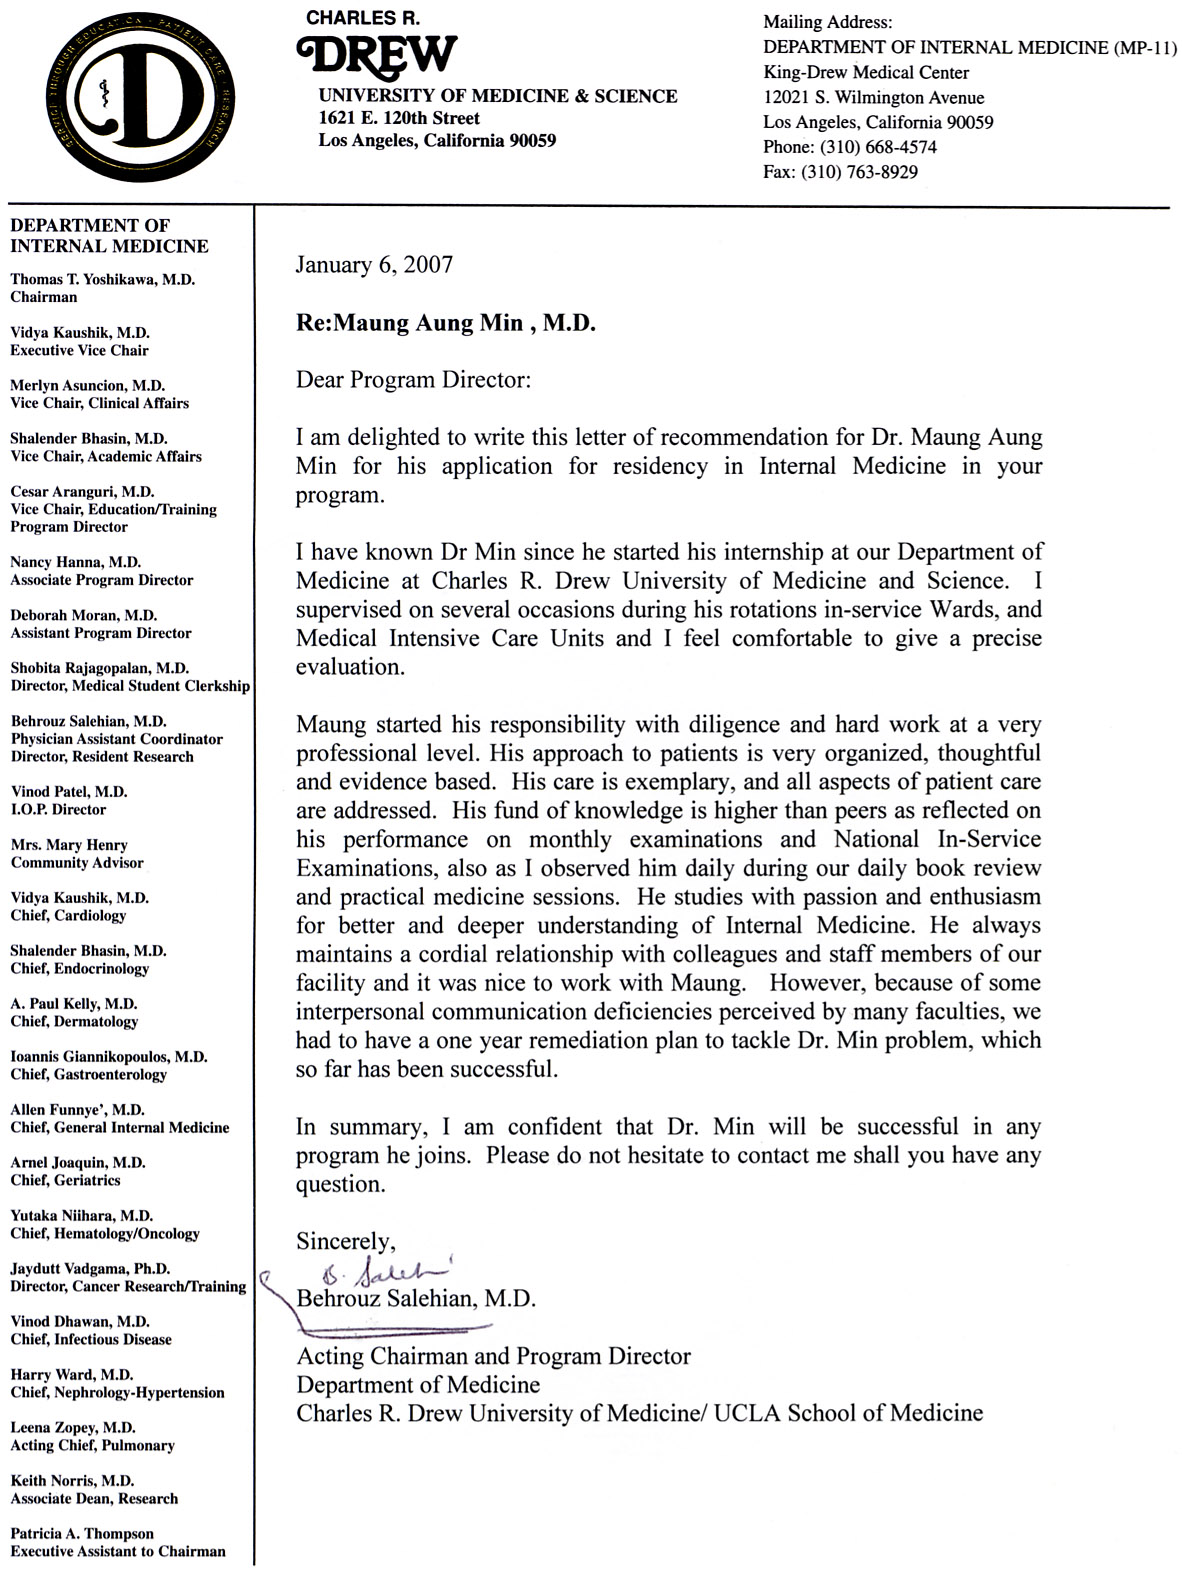 Archives of internal medicine cover letter